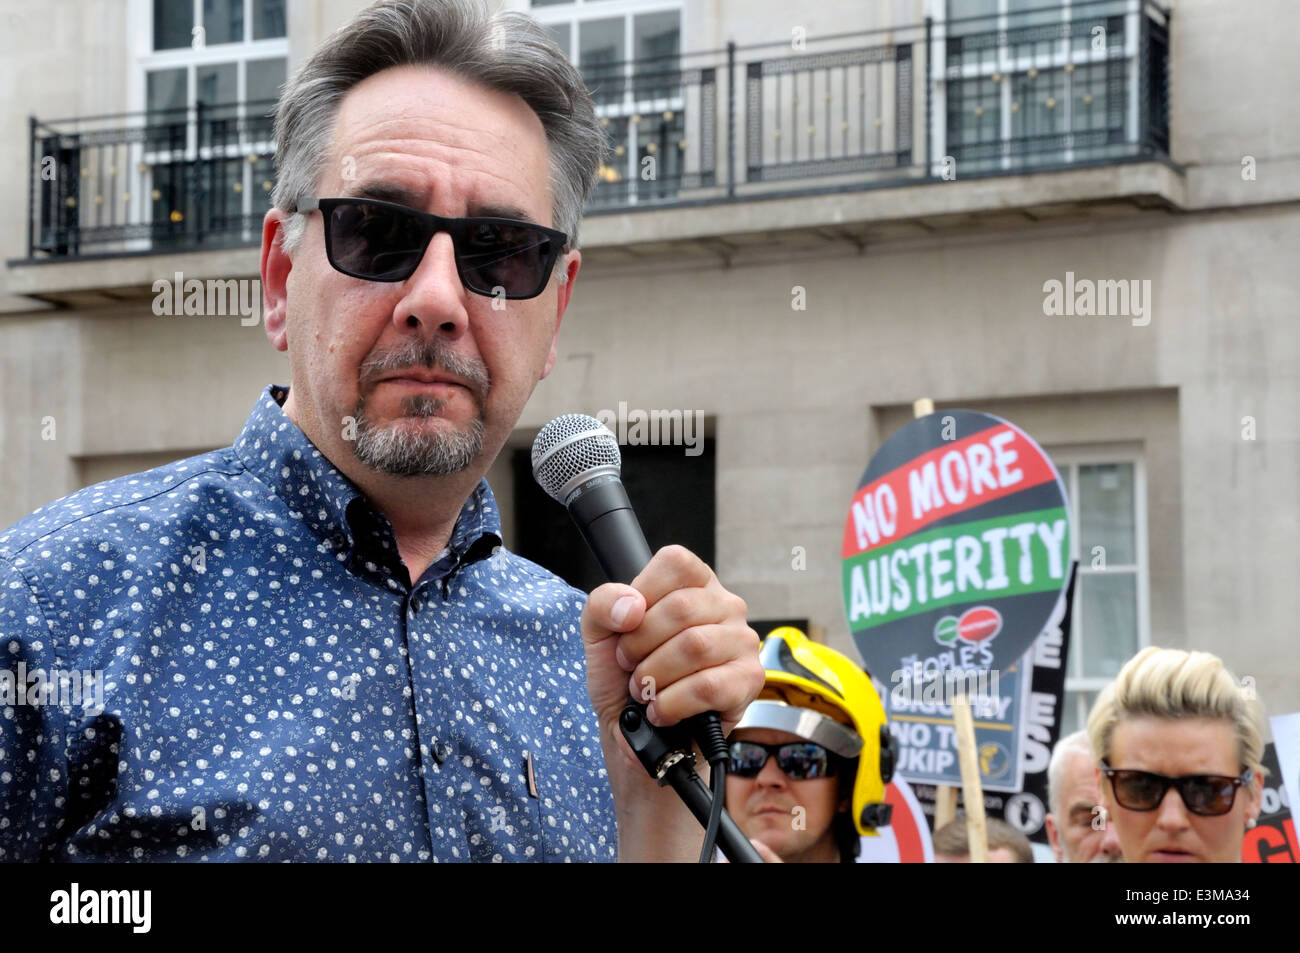 John Rees - British political activist, broadcaster, writer and member of Stop The War Coalition - London, 21st - Stock Image